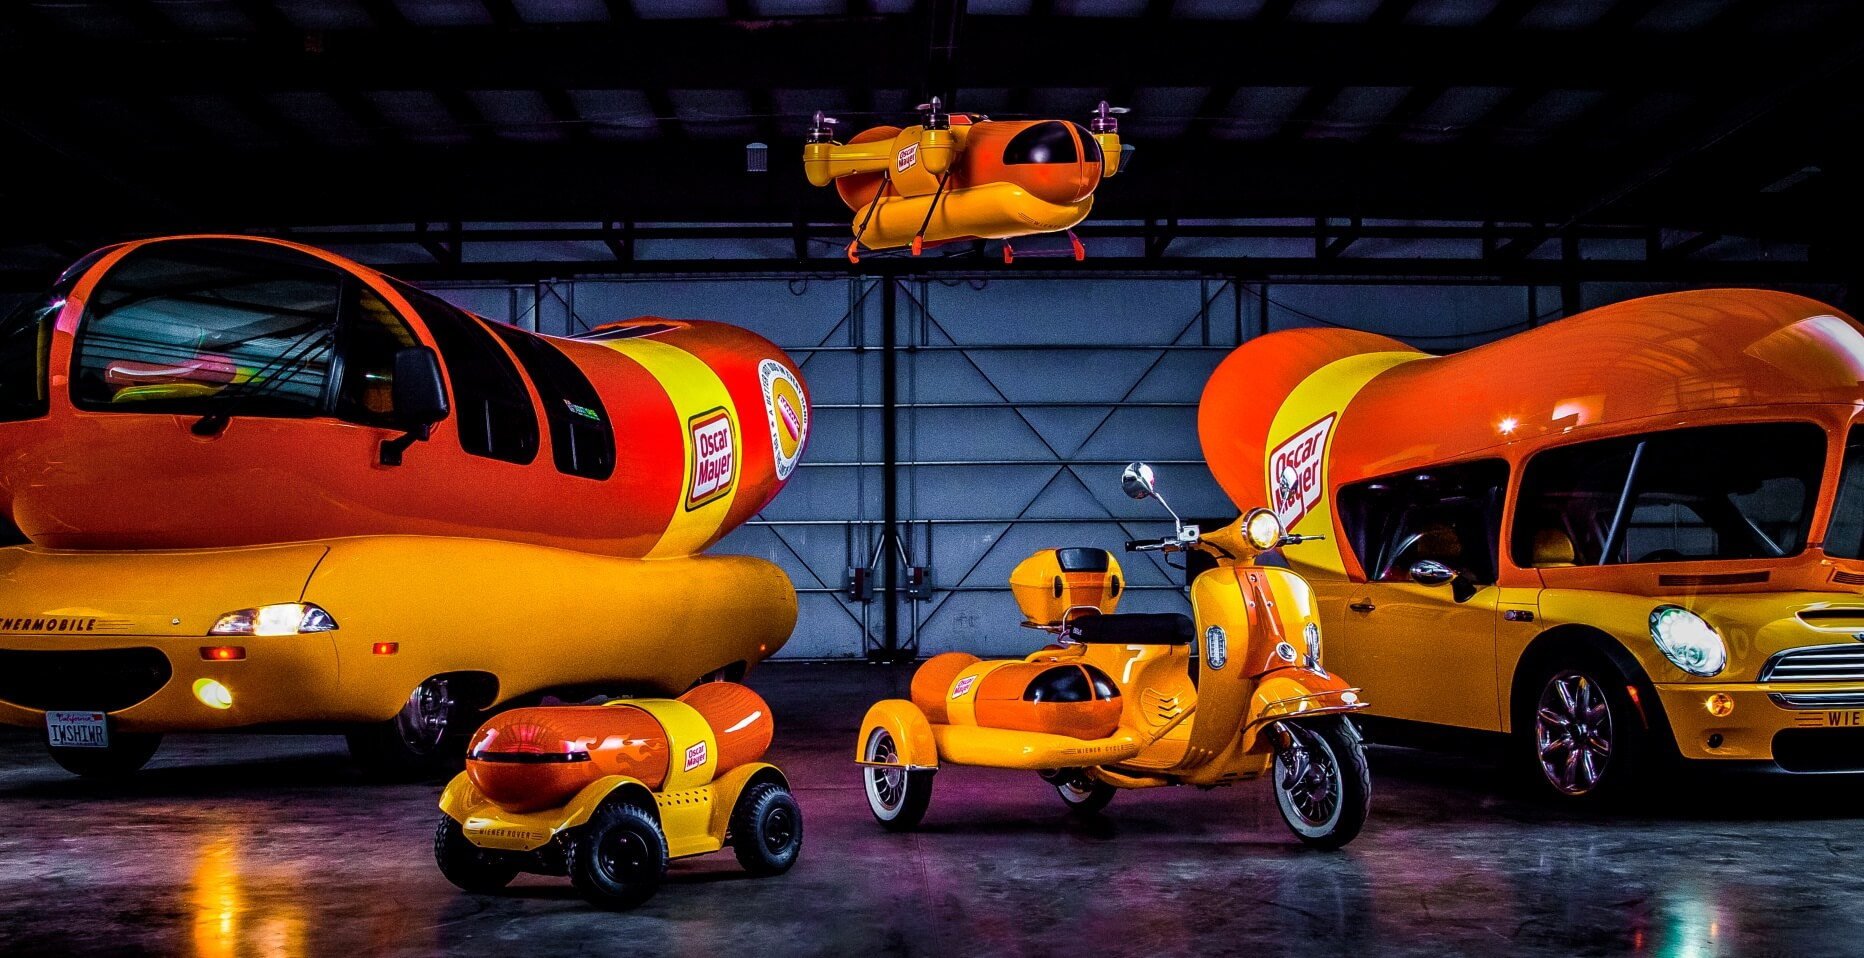 The Oscar Mayer Wienermobile With My Family Inside additionally Humiliating Pet Portraits I Wish I Werent An Oscar Mayer Weiner Dog together with Imgur together with Start Your Engines You Can Now Lease The Oscar Mayer Weinermobile furthermore Oscar Myer Introduces Wienercycle Wienerdrone Ahead July 4th Celebration. on oscar mayer weiner dogs